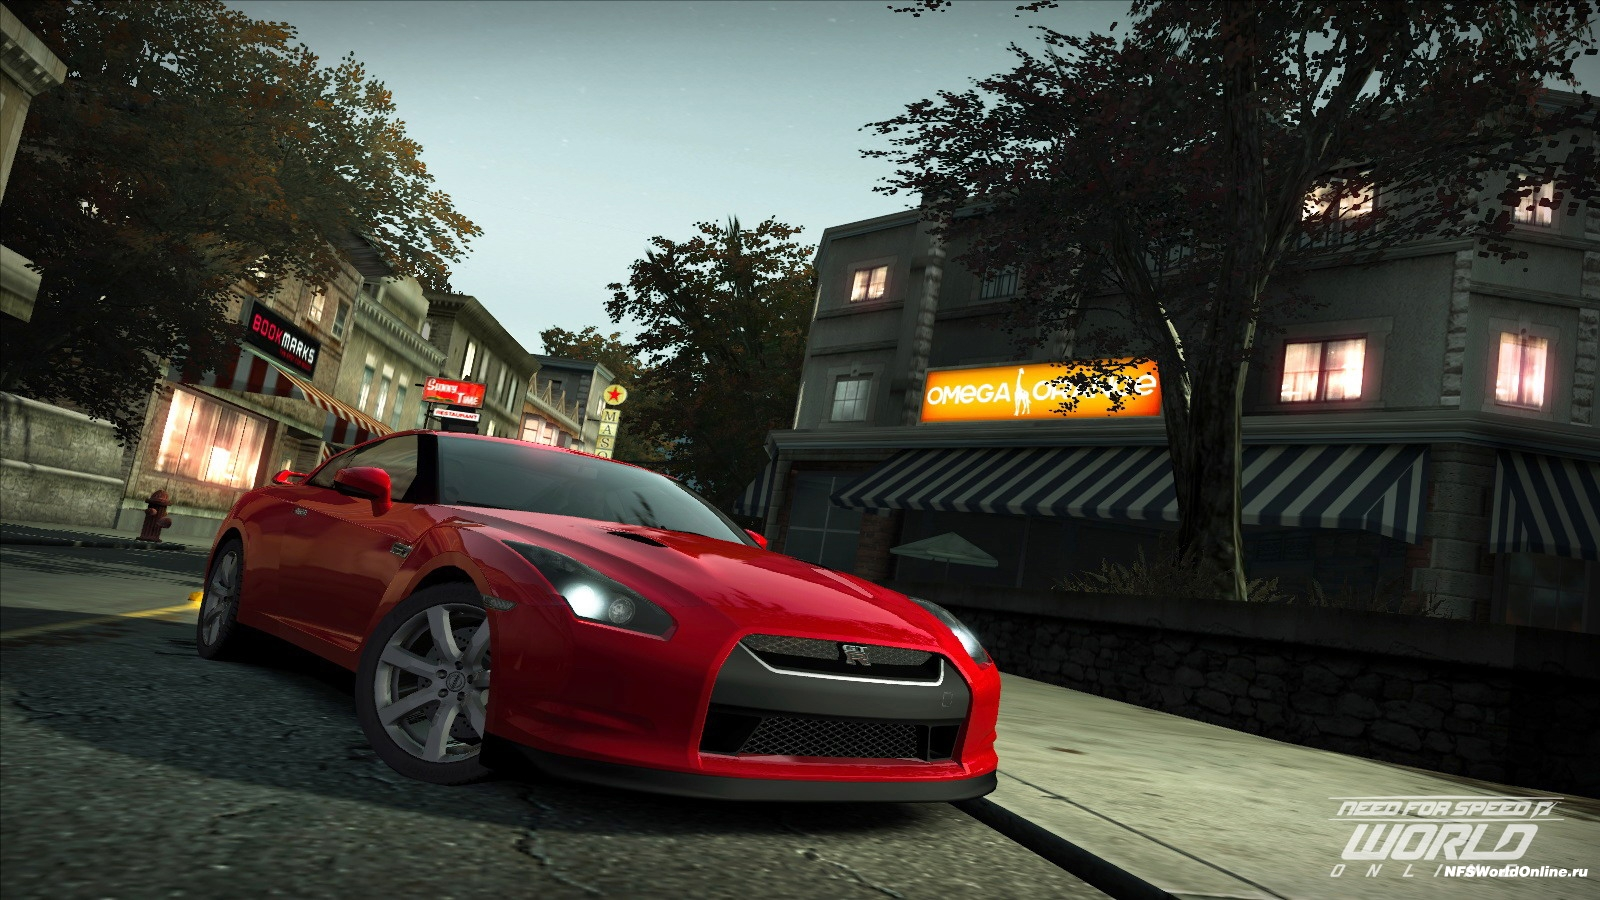 Need for Speed: World Online 45257dc54b383e1ddc5d85ed361d1e87